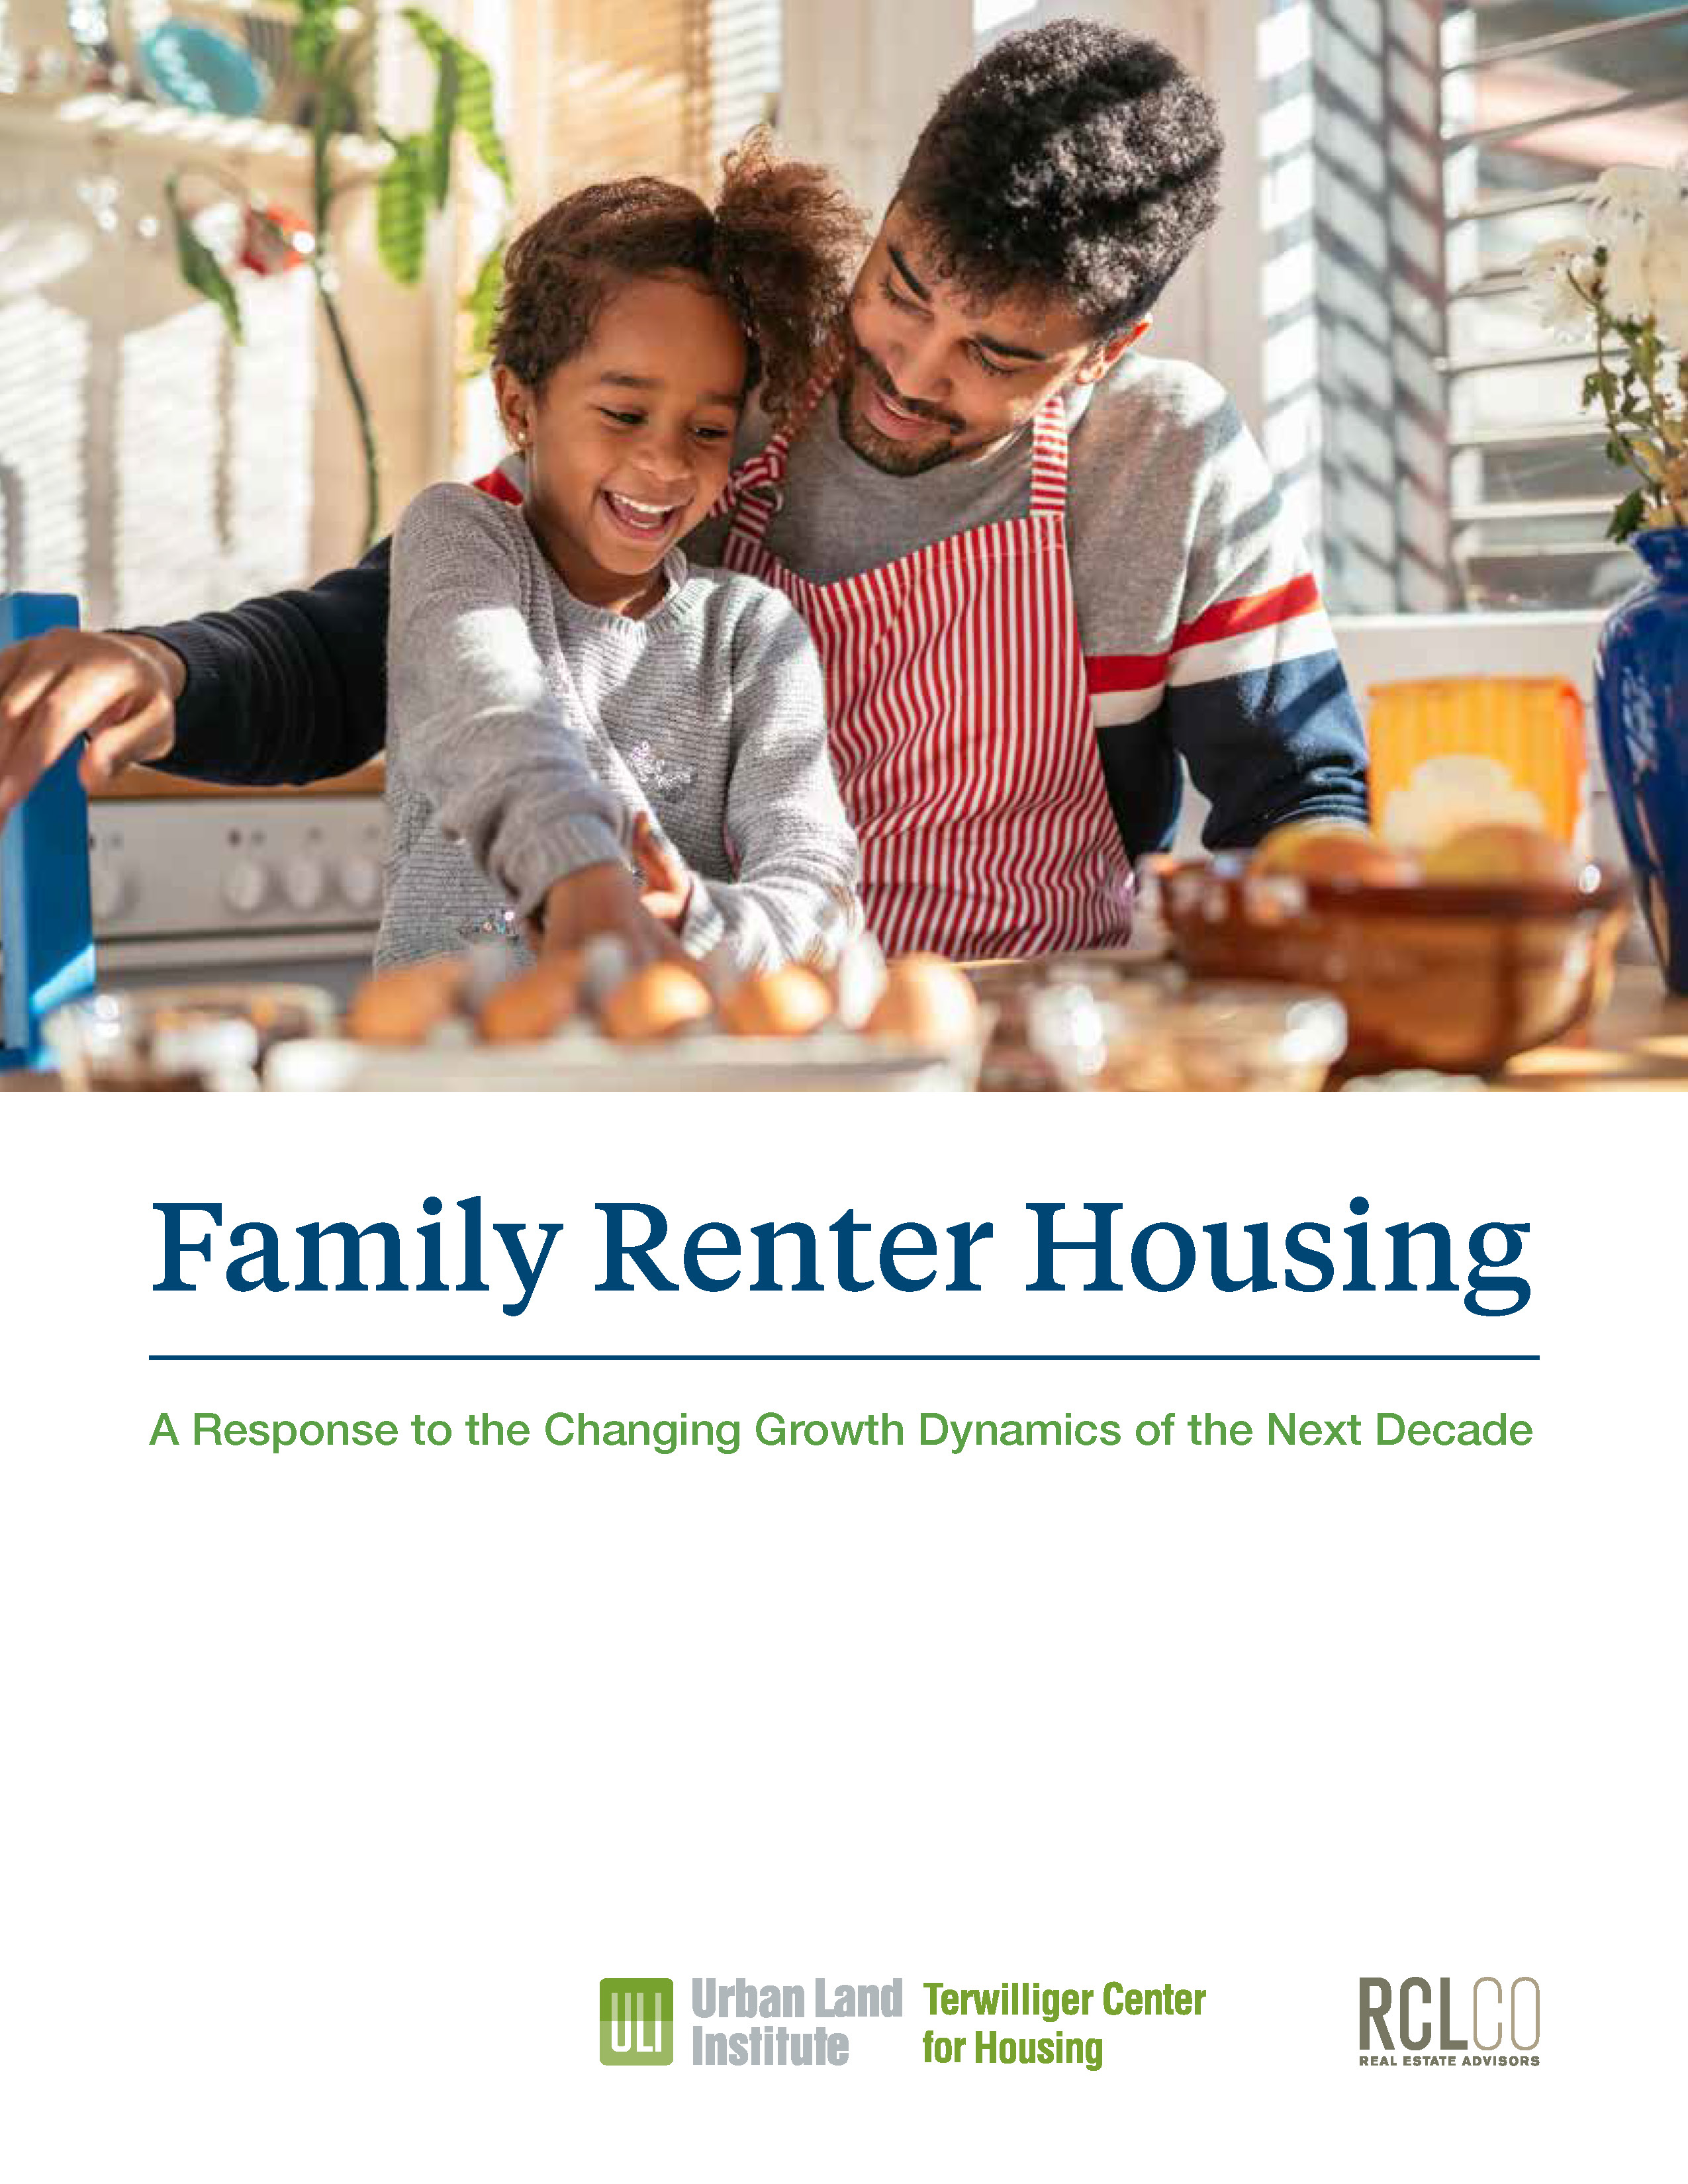 Family Renter Housing: A Response to the Changing Growth Dynamics of the Next Decade Cover